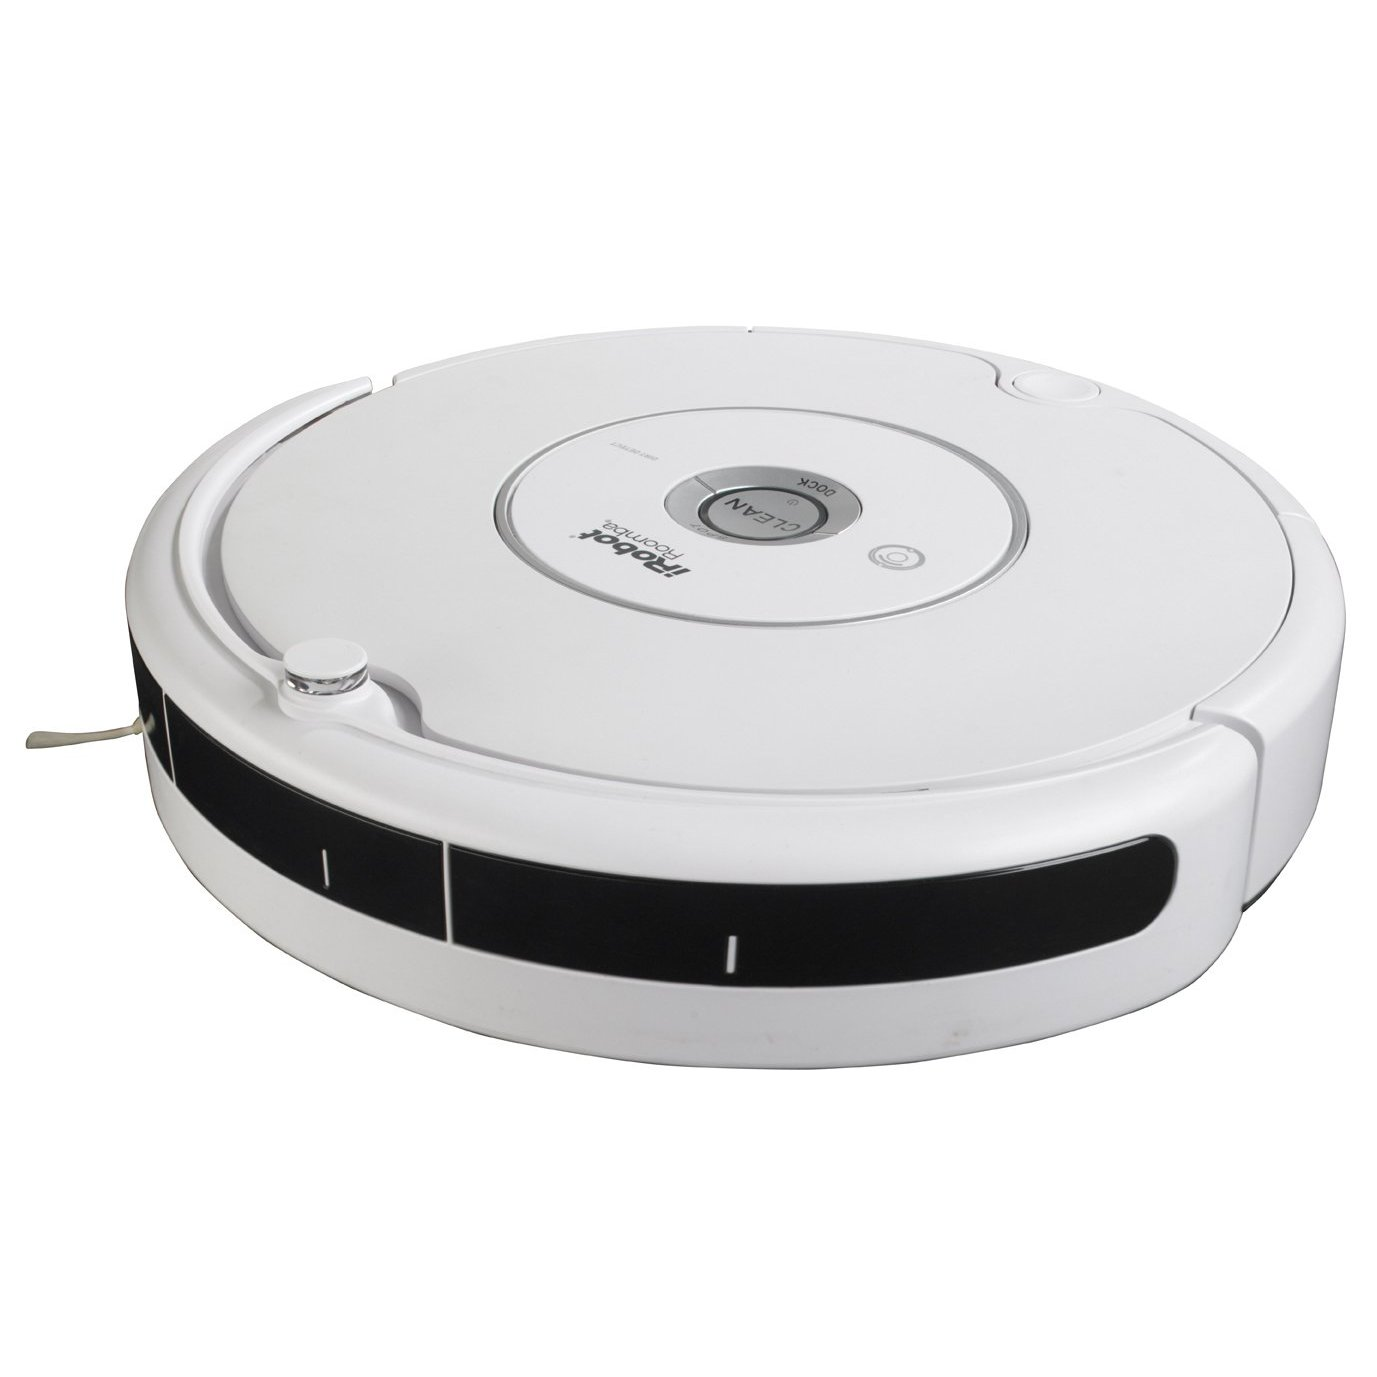 iRobot_530_Roomba_Vacuuming_Robot_White